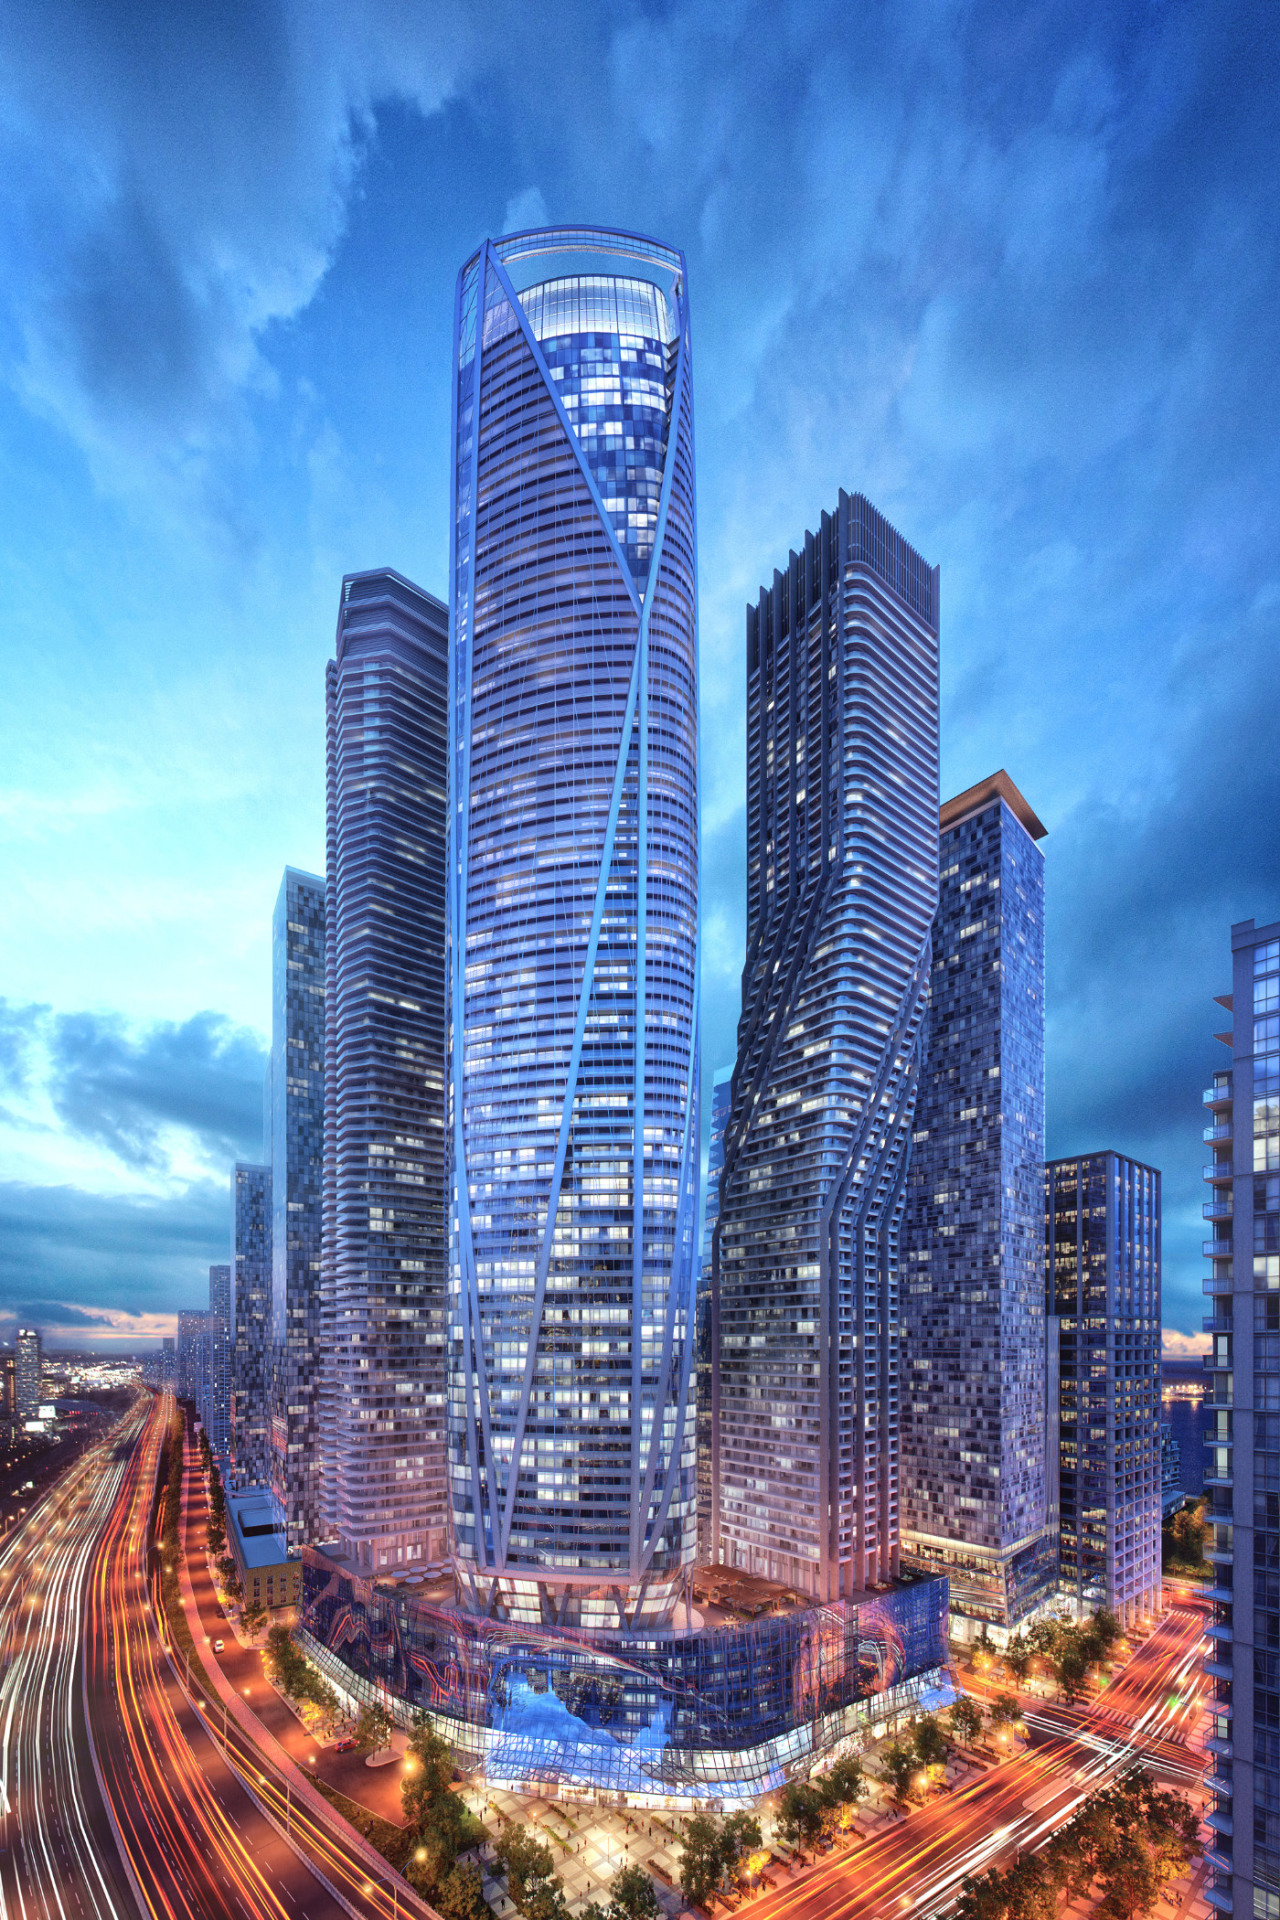 #ARCHITECTURE #RENDERINGS Toronto, Canada | One Yonge | Hariri Pontarini Architects Mastering Autodesk Viz Render 2006: A Resource For Autodesk Architecural Desktop Users 9 new from $47.96 16 used from $8.72 SOURCE | 12.05.2013 | 14.00 High resolution renderings (showcase) http://www.skyscrapercity.com/showthread.php?t=1141539